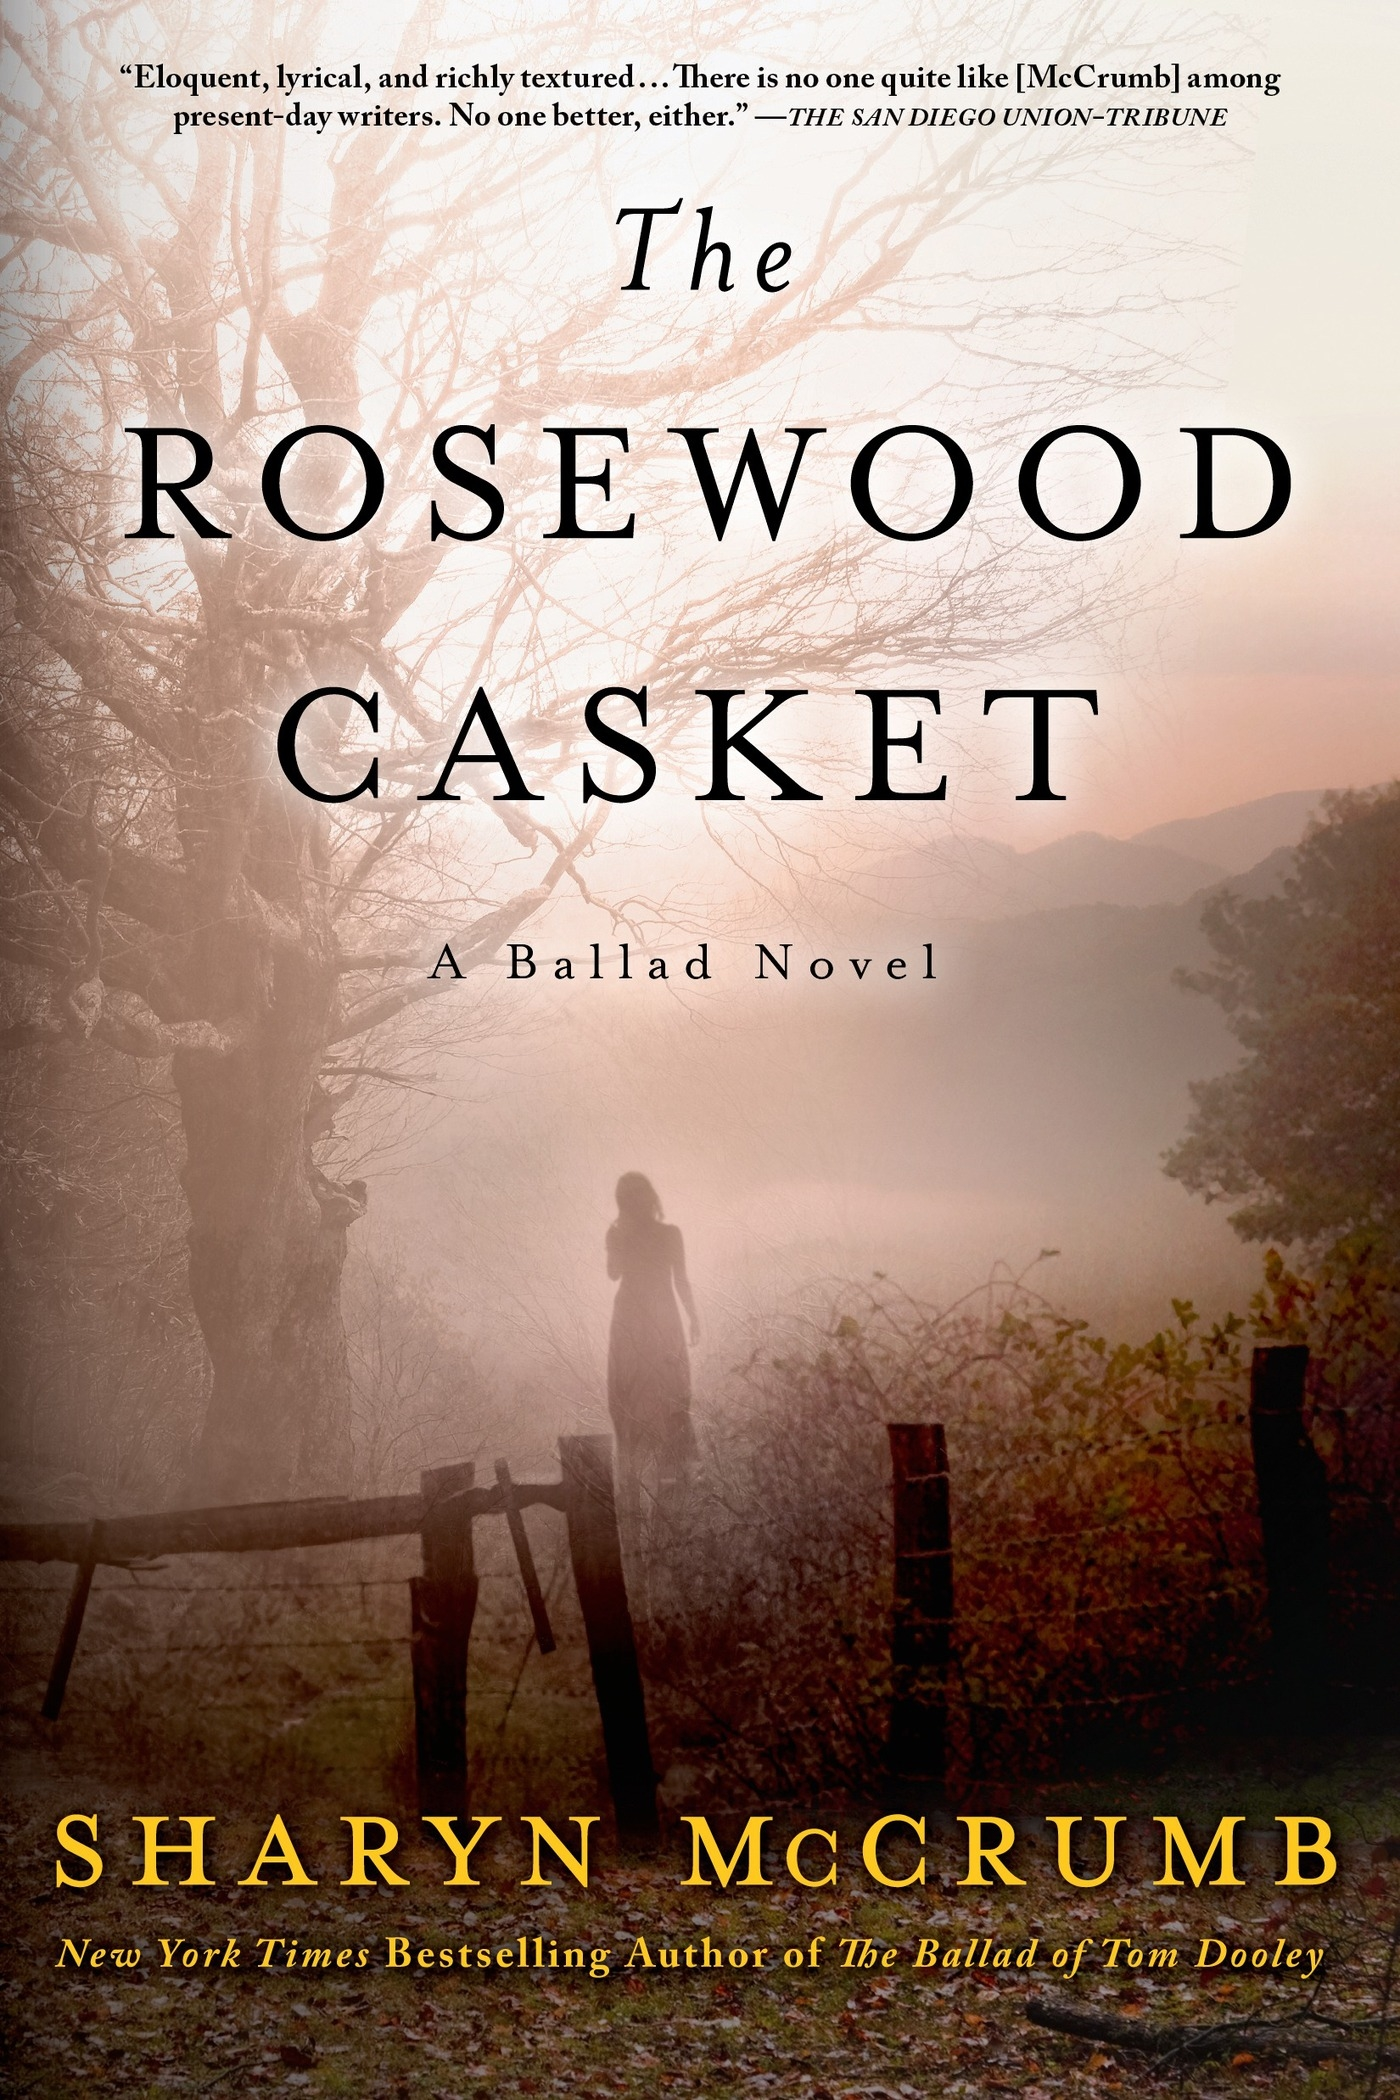 The Rosewood Casket [electronic resource] : A Ballad Novel